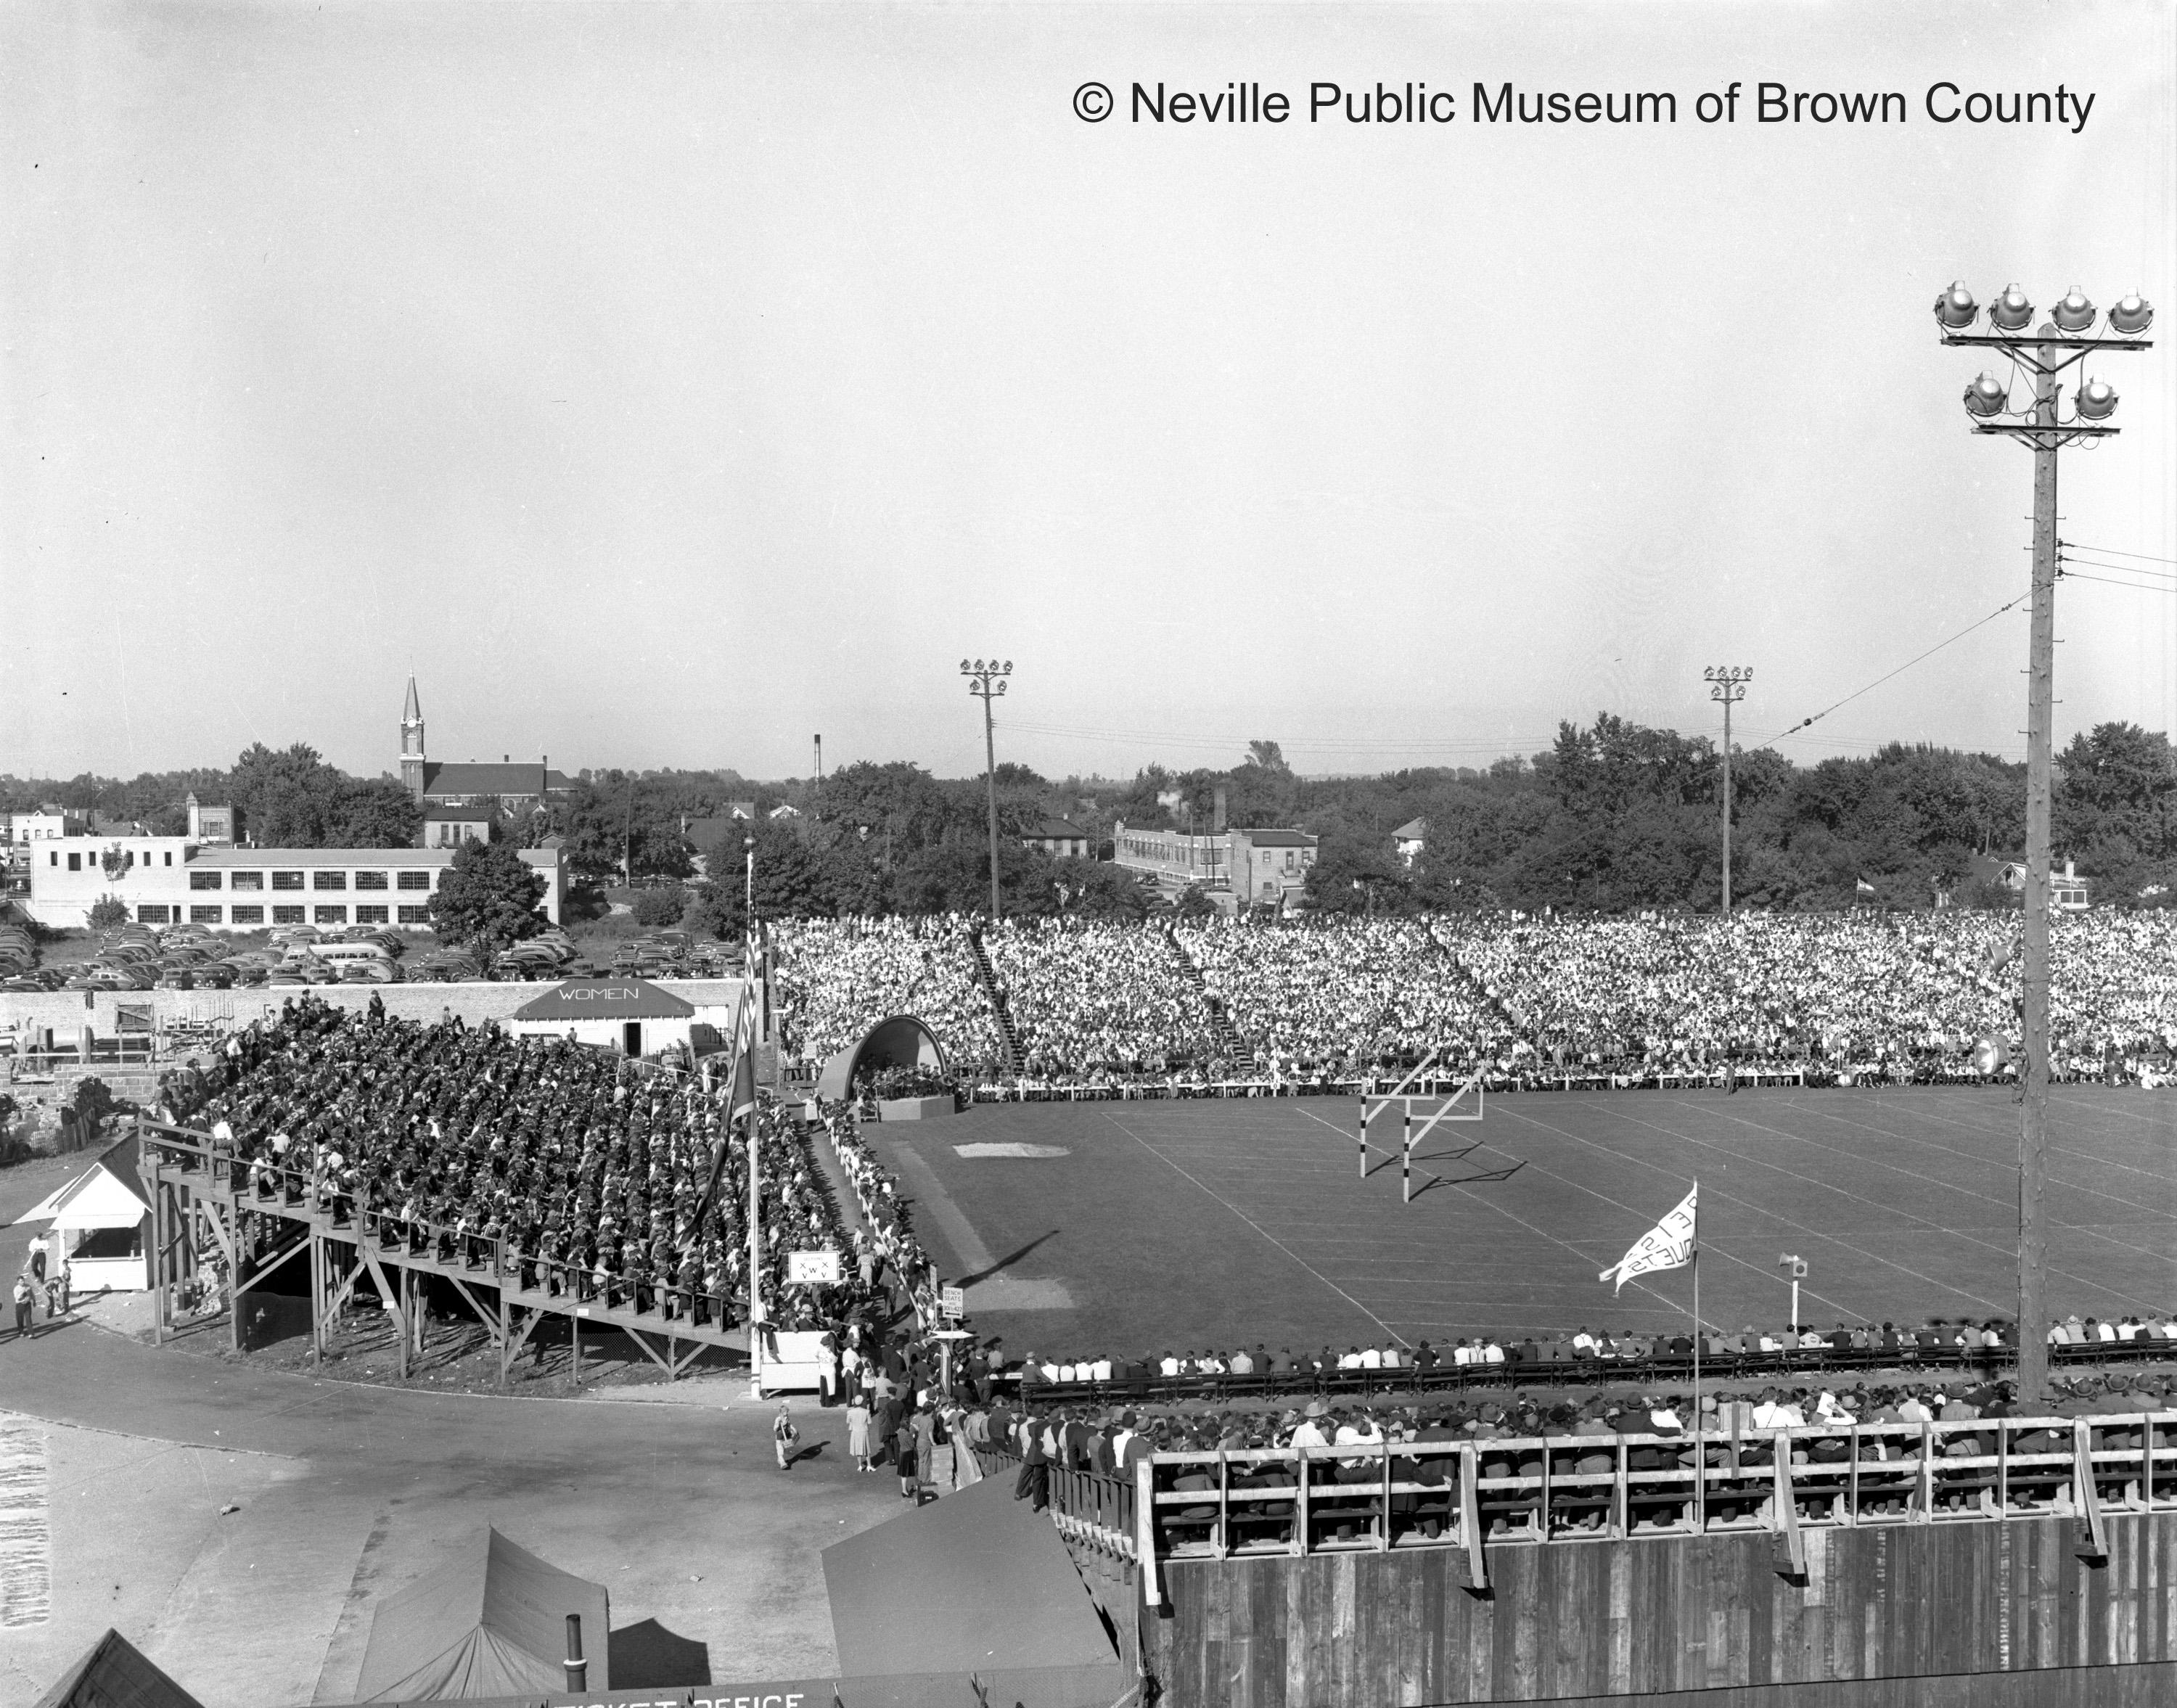 Later photos of City Stadium show it with bleacher seating in the end zone. The stadium was originally built to seat 6,000 but grew to 25,000 at its peak. (Courtesy: Neville Public Museum of Brown County)